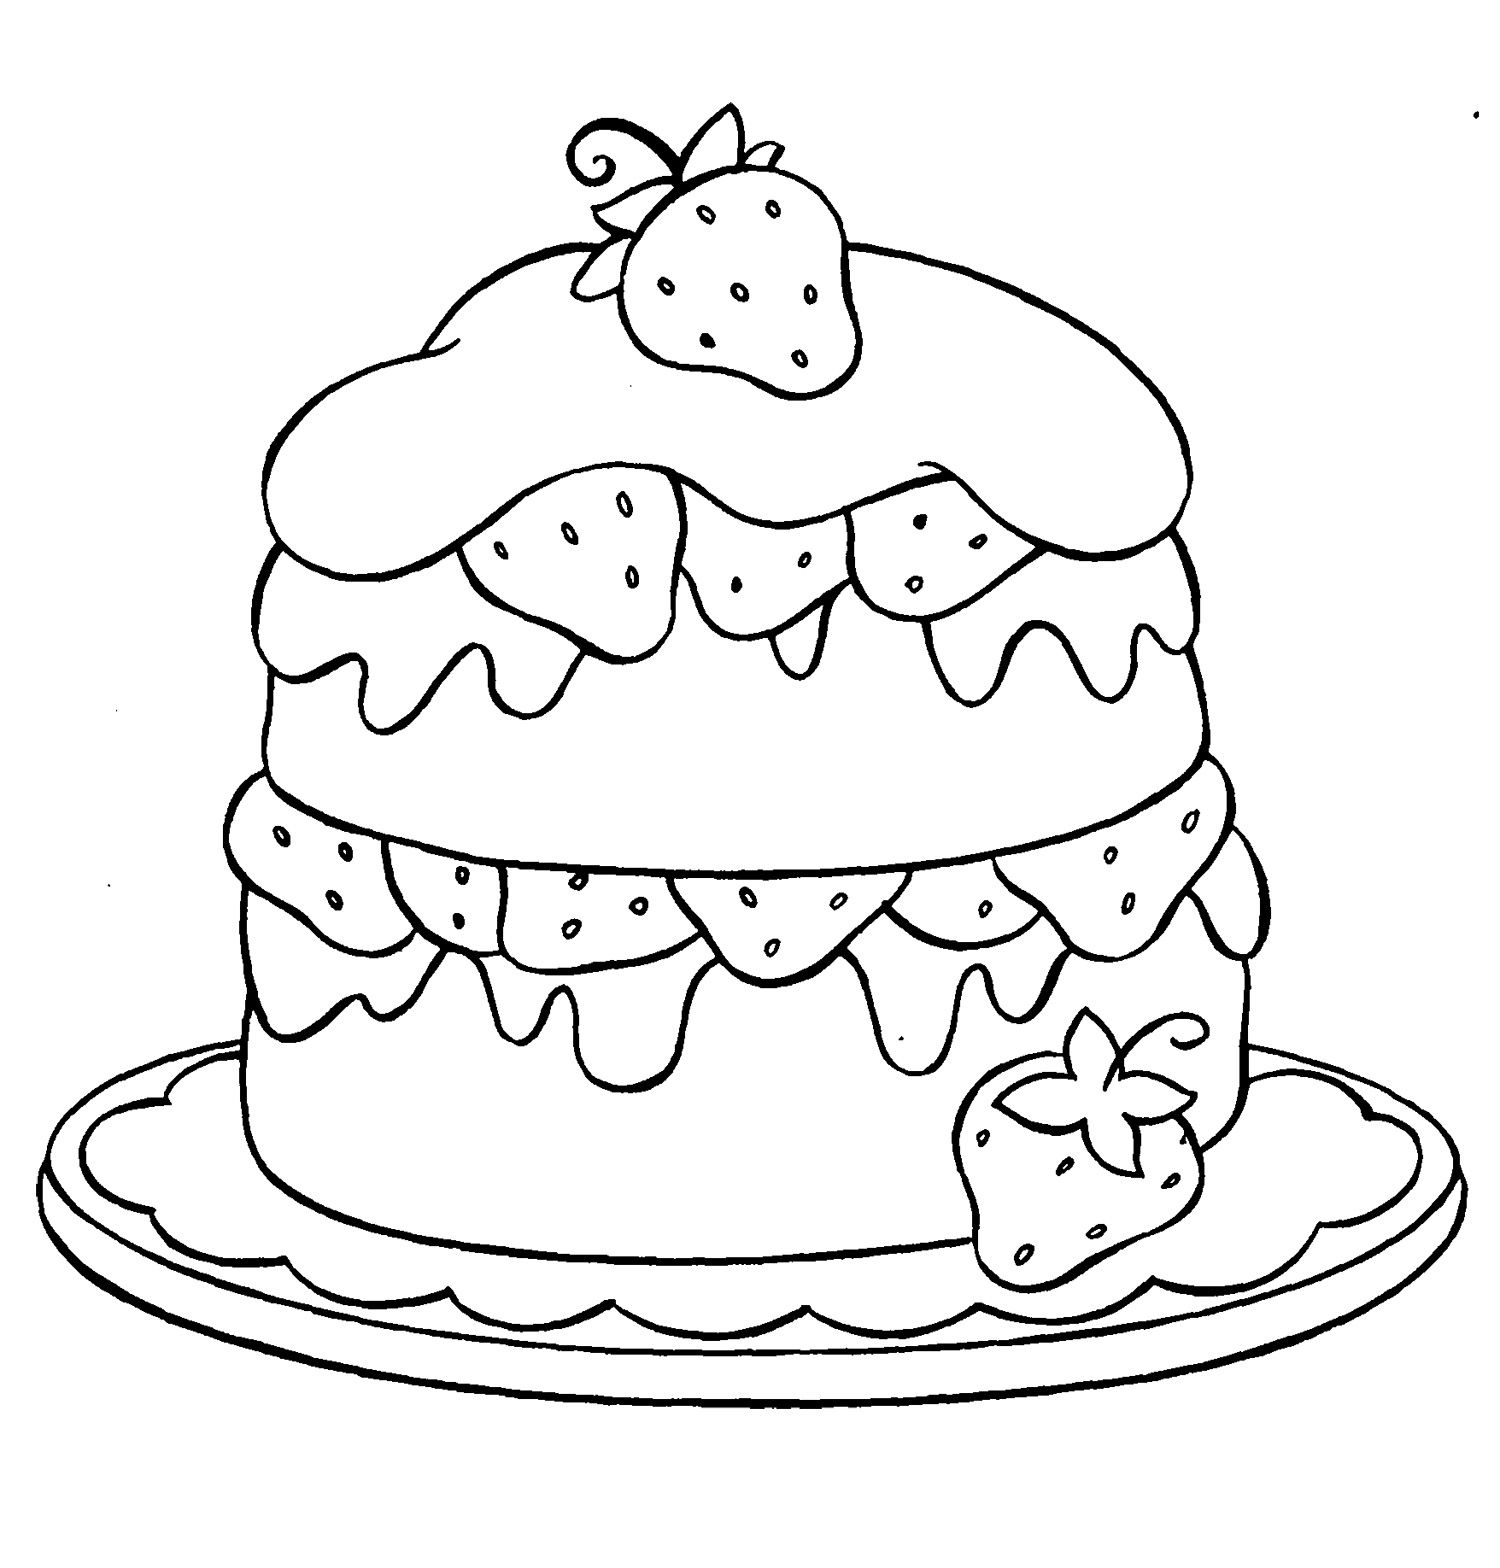 Cupcake Strawberry Coloring Page cupcake sweets Pinterest